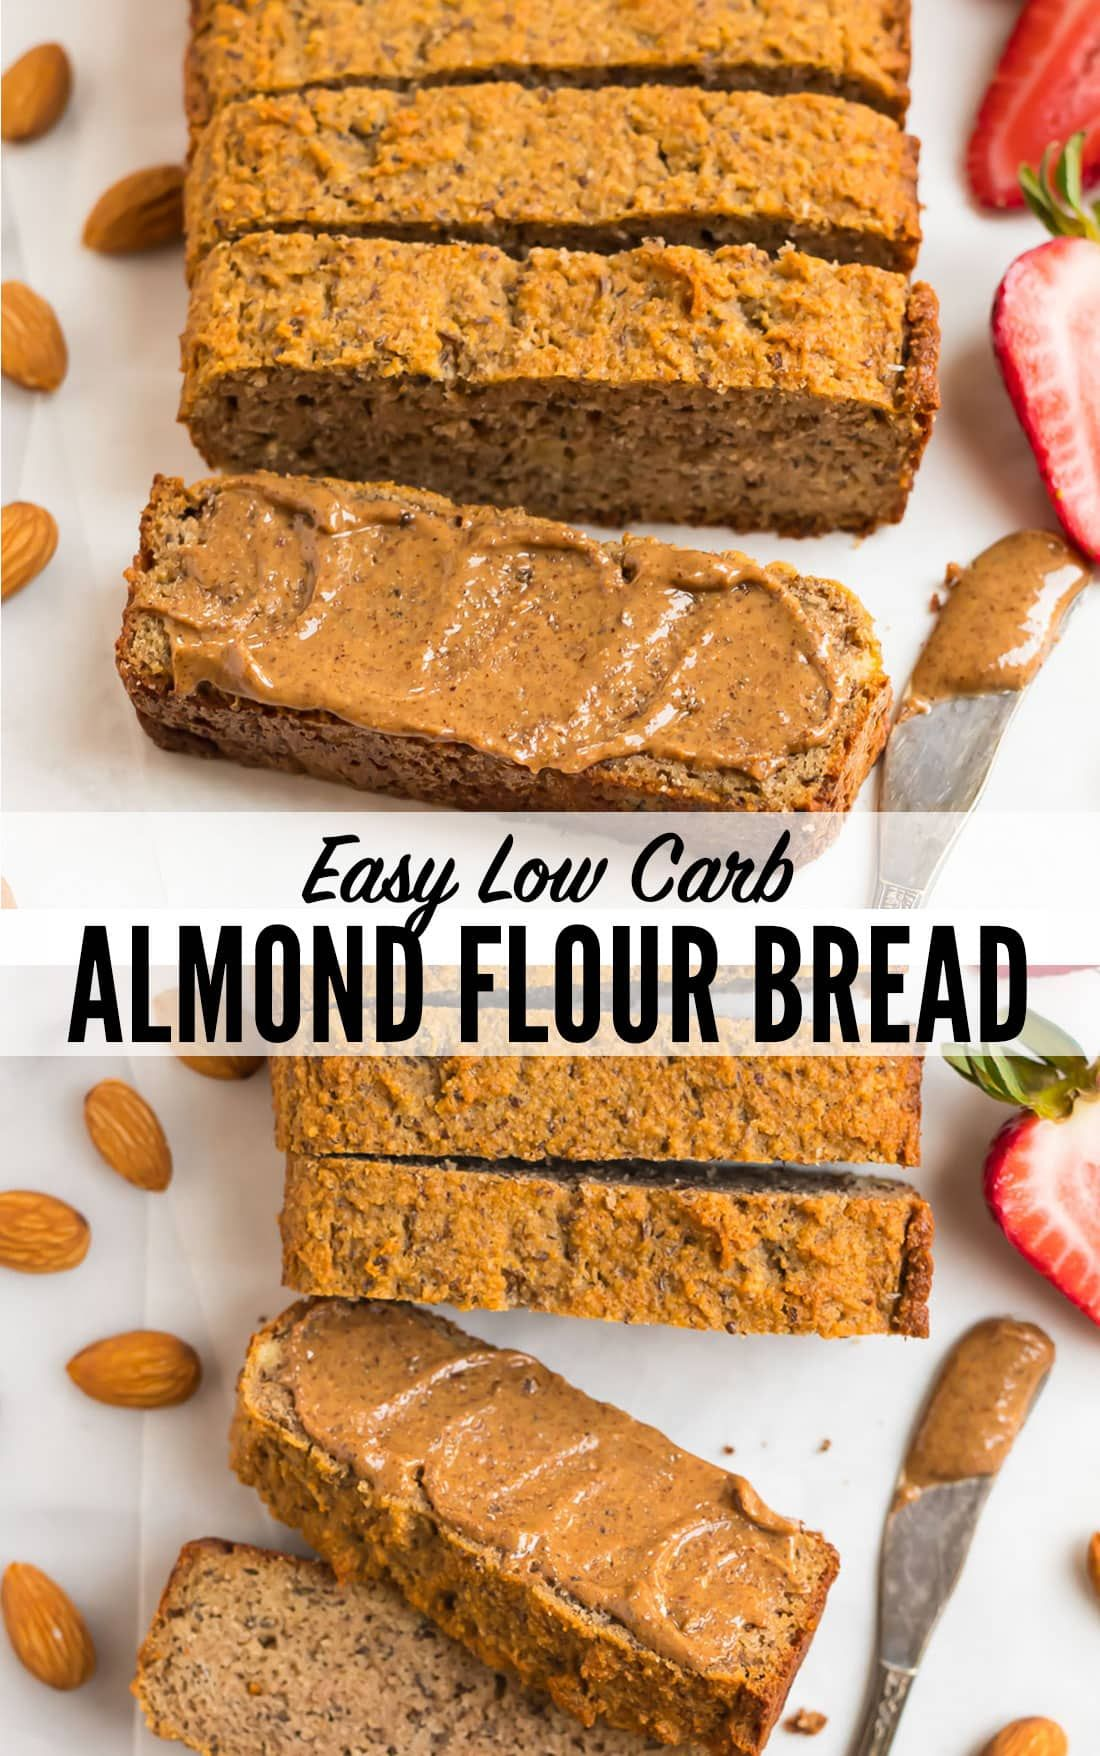 The Best Quick Almond Flour Bread Low Carb Paleo Keto And Gluten Free This Easy Bread Comes Togeth Almond Flour Bread Almond Bread Keto Bread Coconut Flour